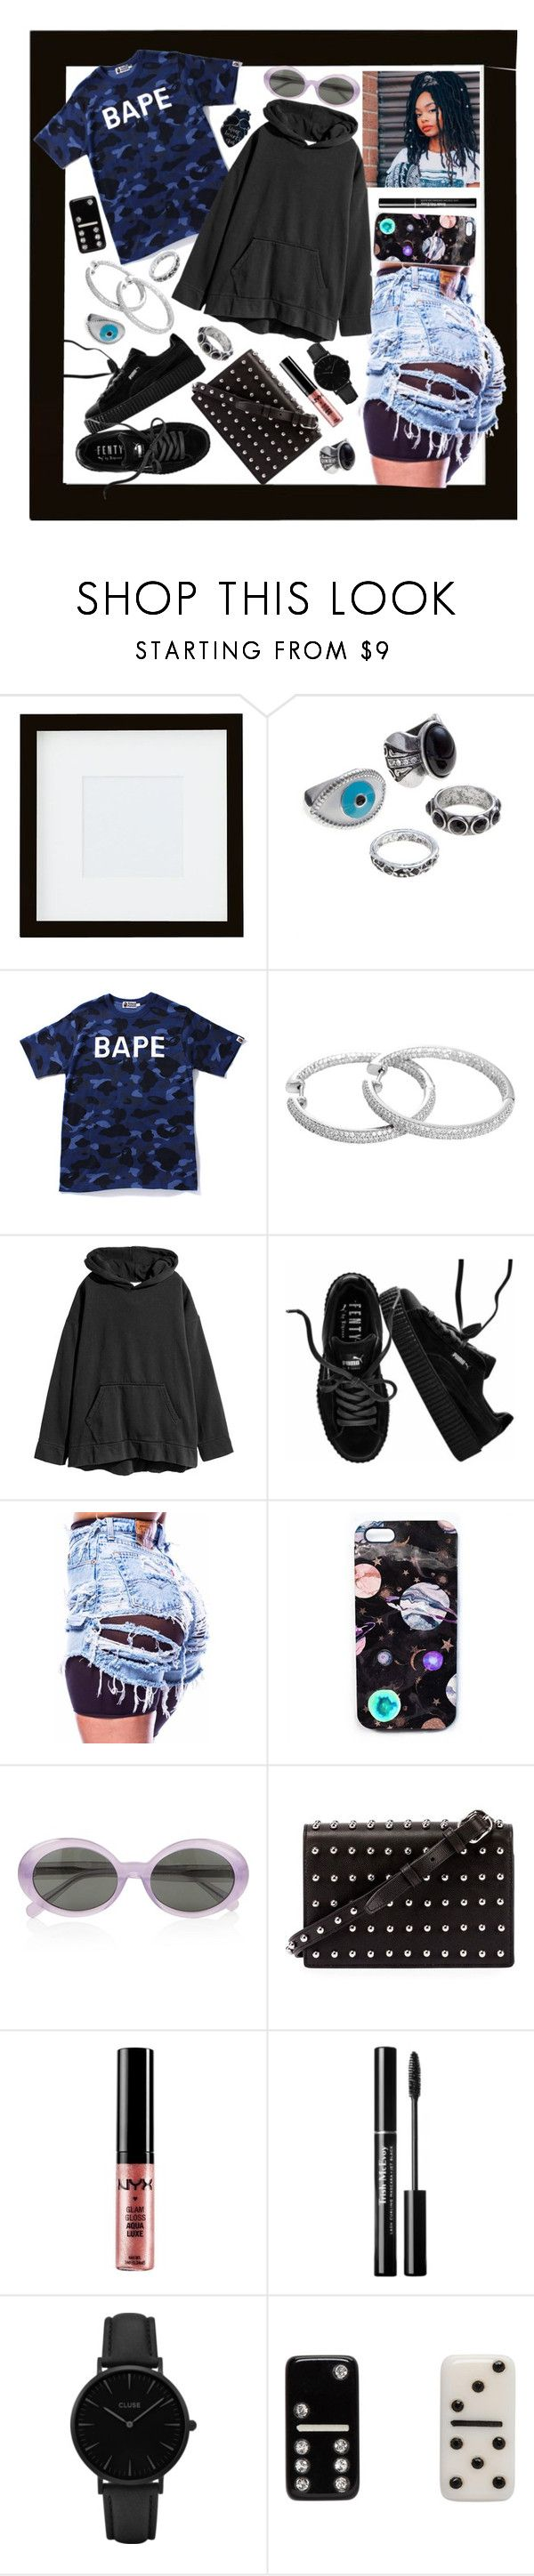 """""""Keep your heart 3 stacks🖤"""" by raven-so-cute ❤ liked on Polyvore featuring Pottery Barn, A BATHING APE, Puma, Nikki Strange, Yves Saint Laurent, Alexander Wang, NYX, CLUSE and Marc Jacobs"""